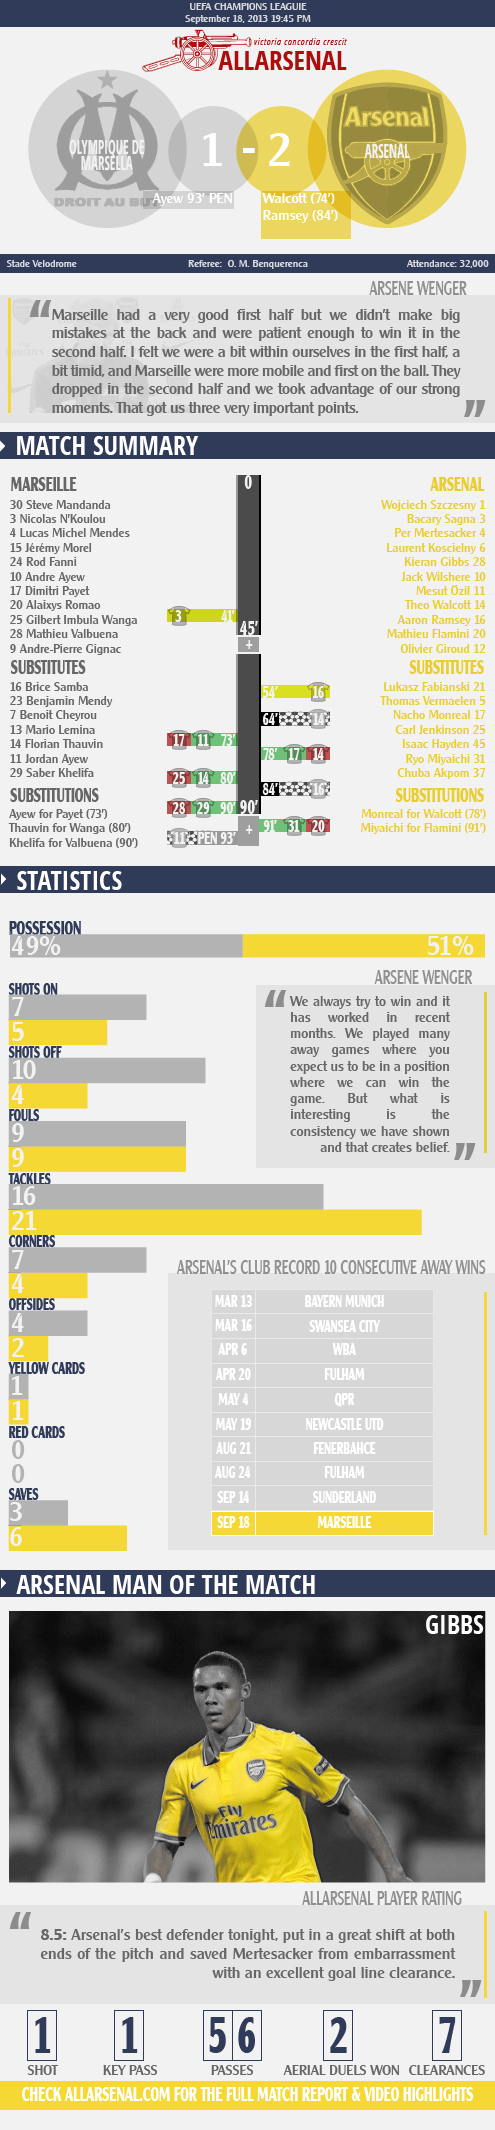 marseille vs arsenal match report infographic